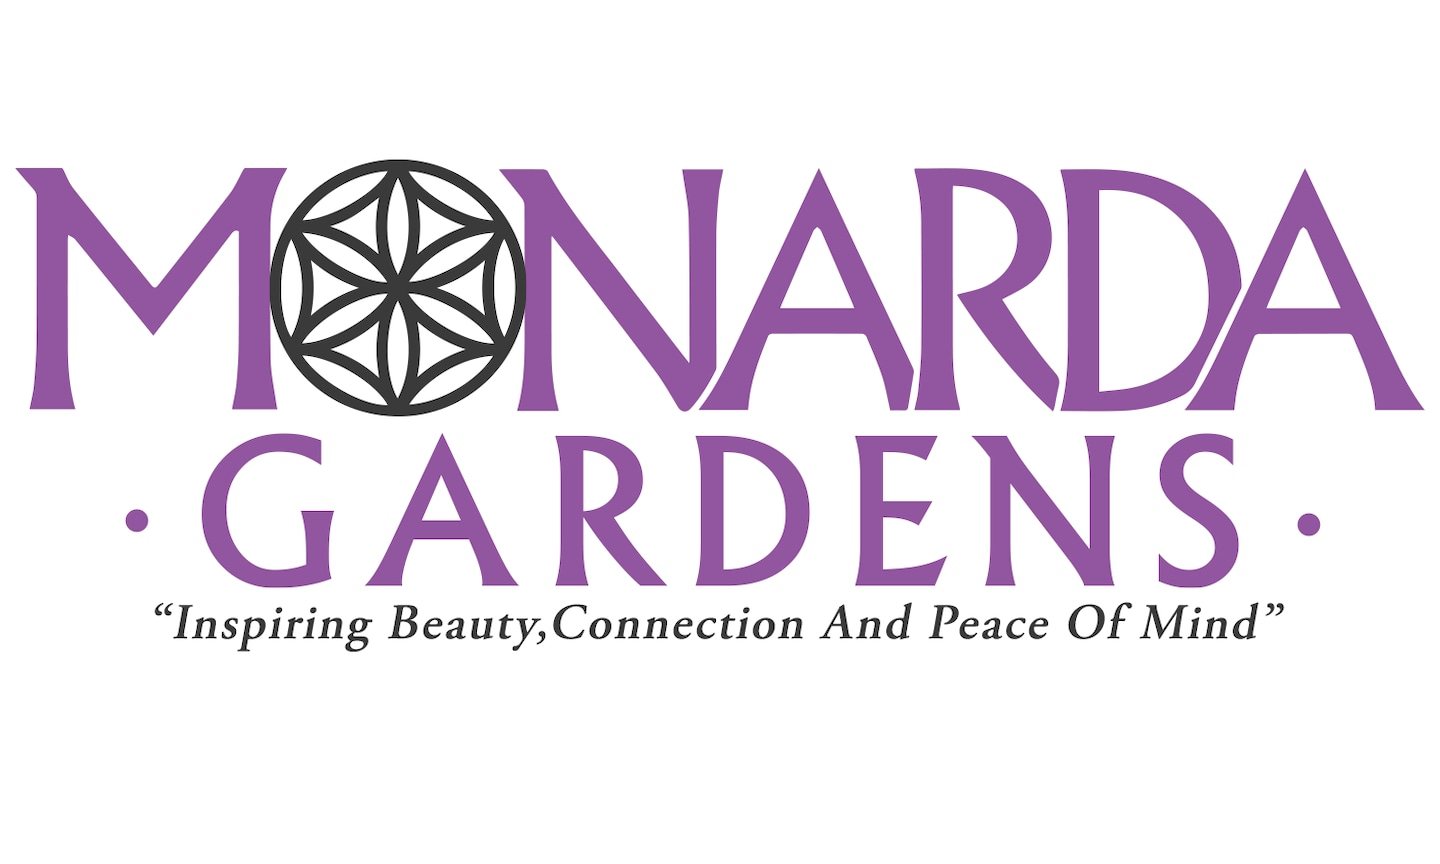 Monarda Garden and Landscape Services